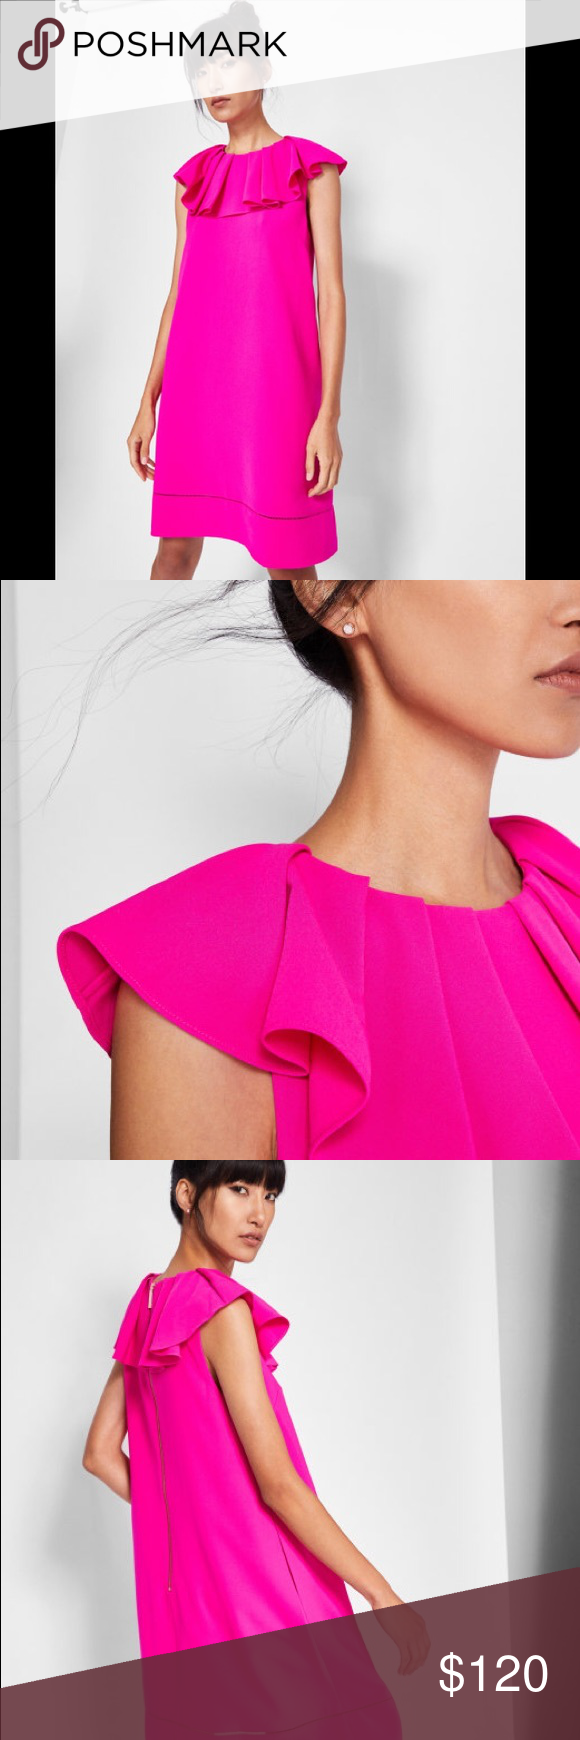 d14faea7c38452 Bright Pink · Ruffles · Neckline · Pretty · Ted Baker Clarees shift dress  CLAREES Ruffle neck shift dress Labeled as Ted size 0 COLOUR